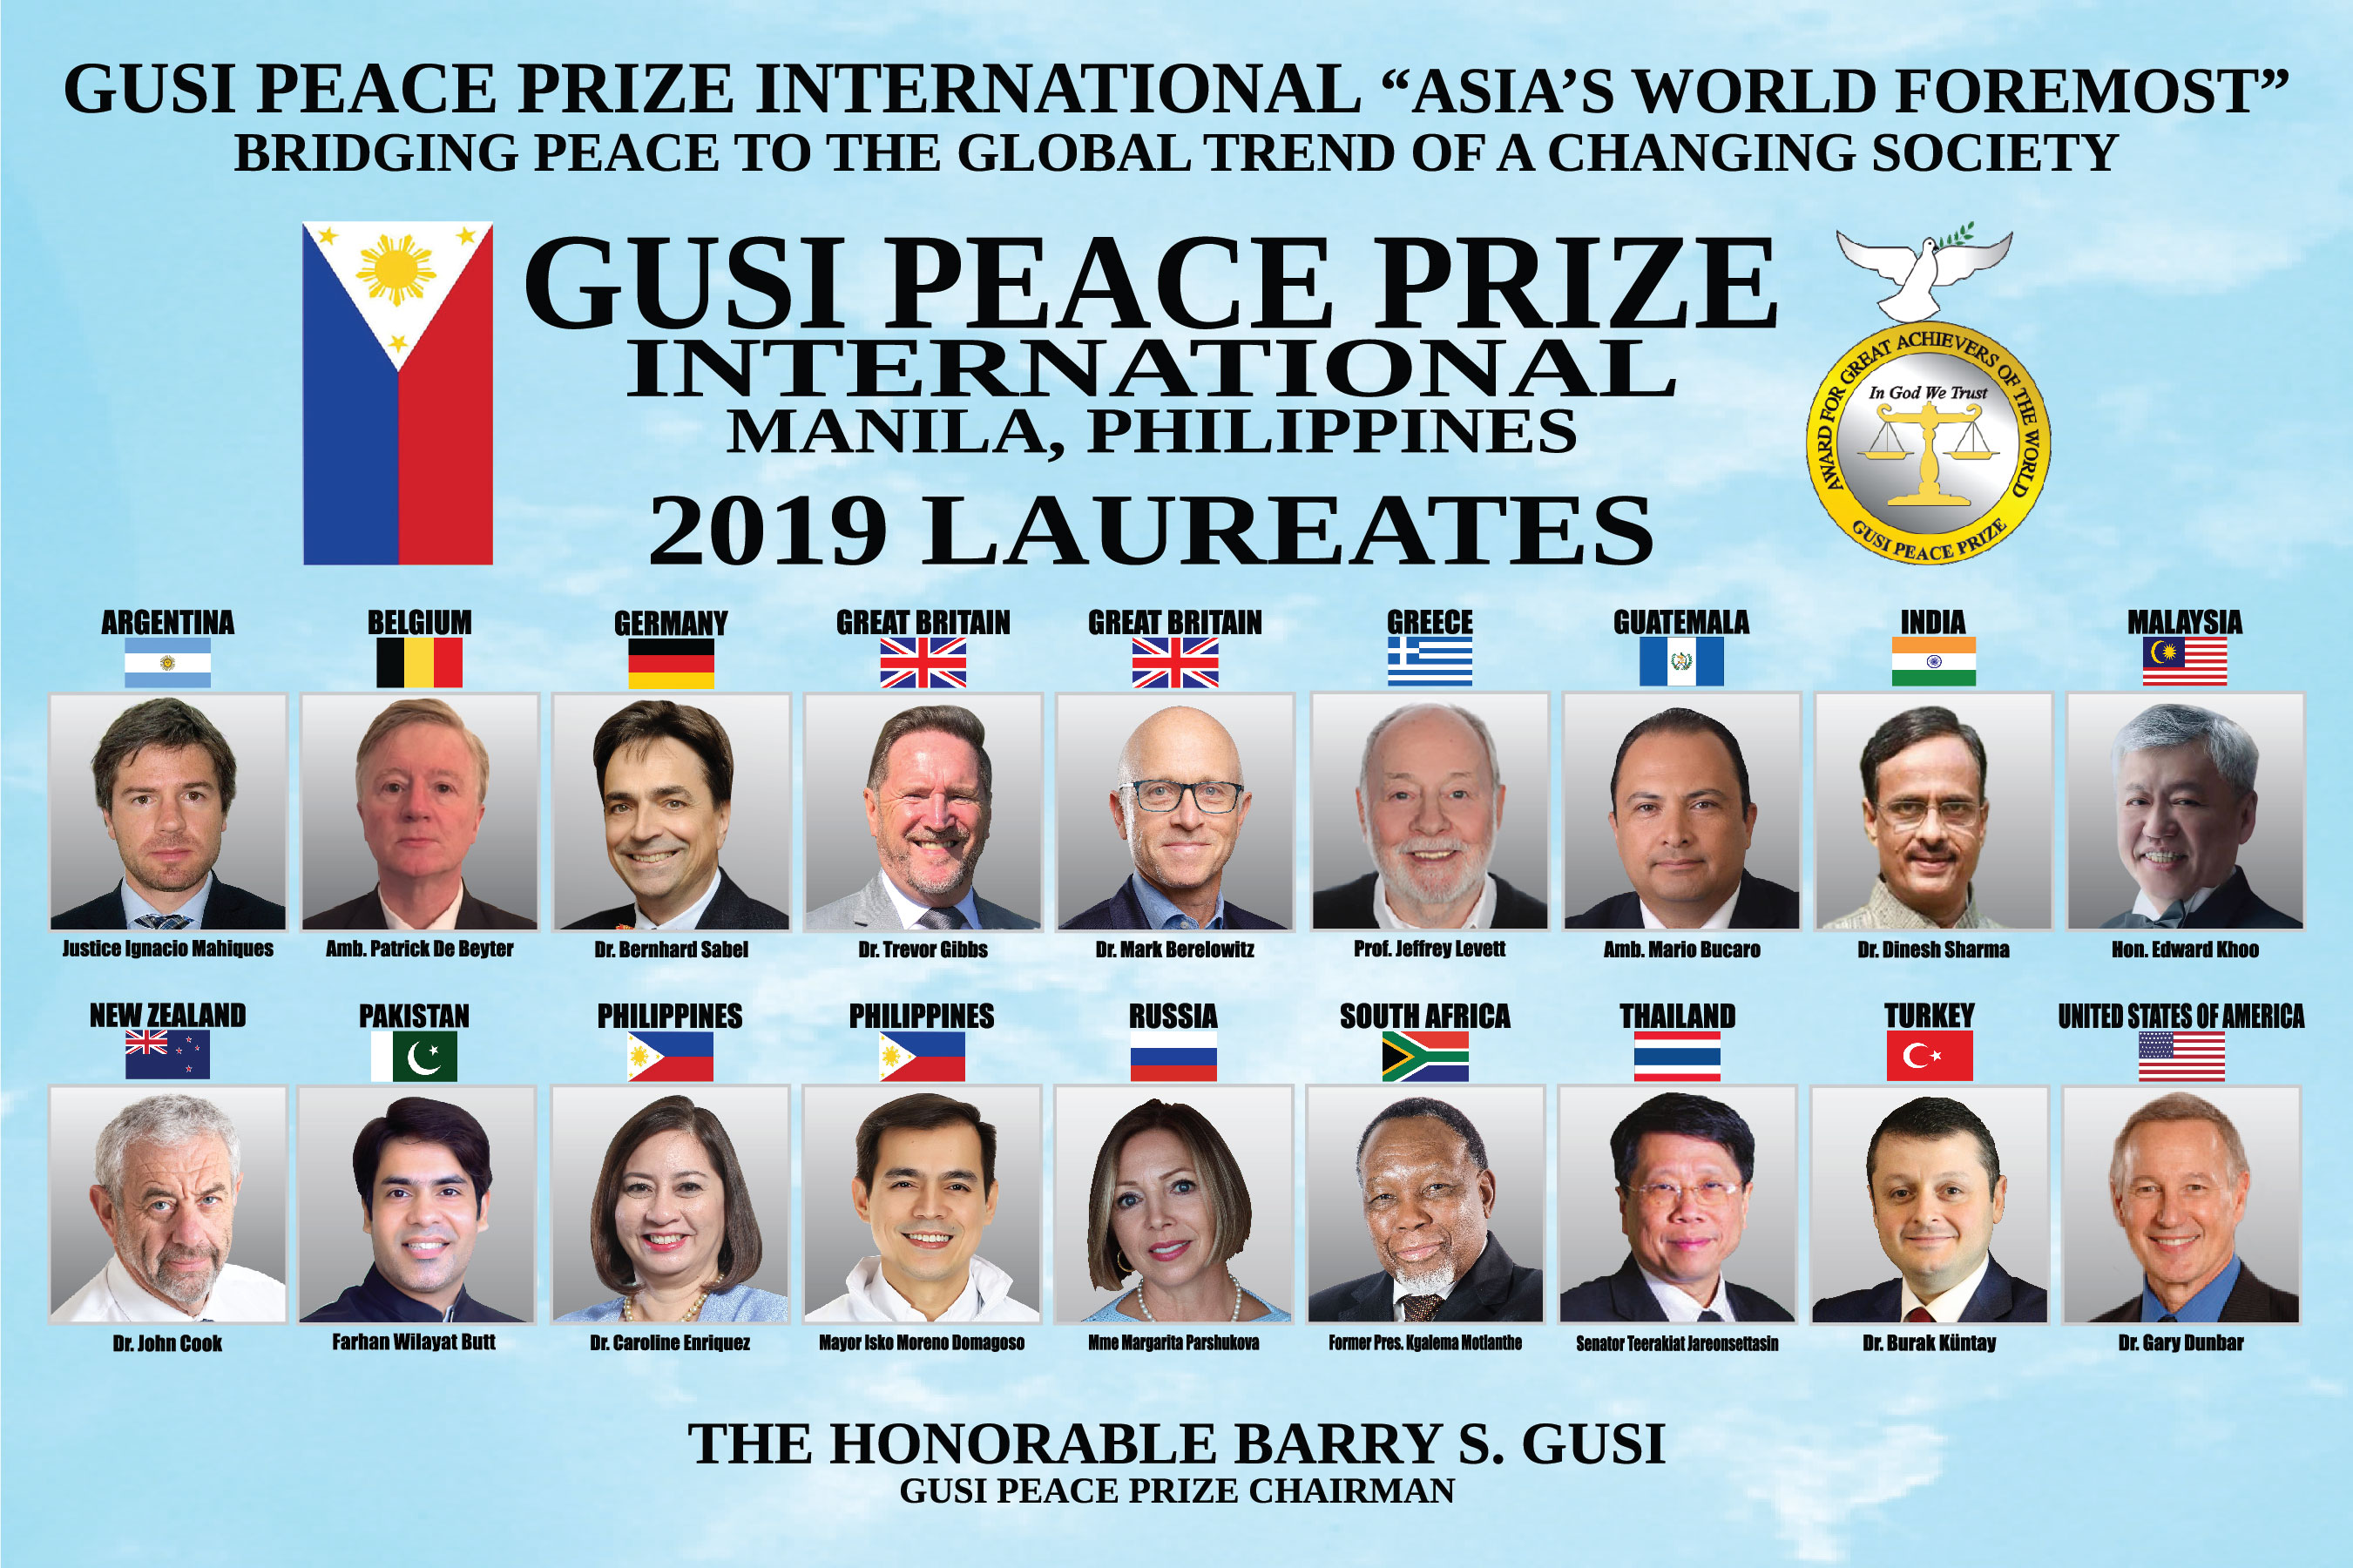 Dr. Enriquez to be recognized as 2019 Gusi Peace Prize Laureate